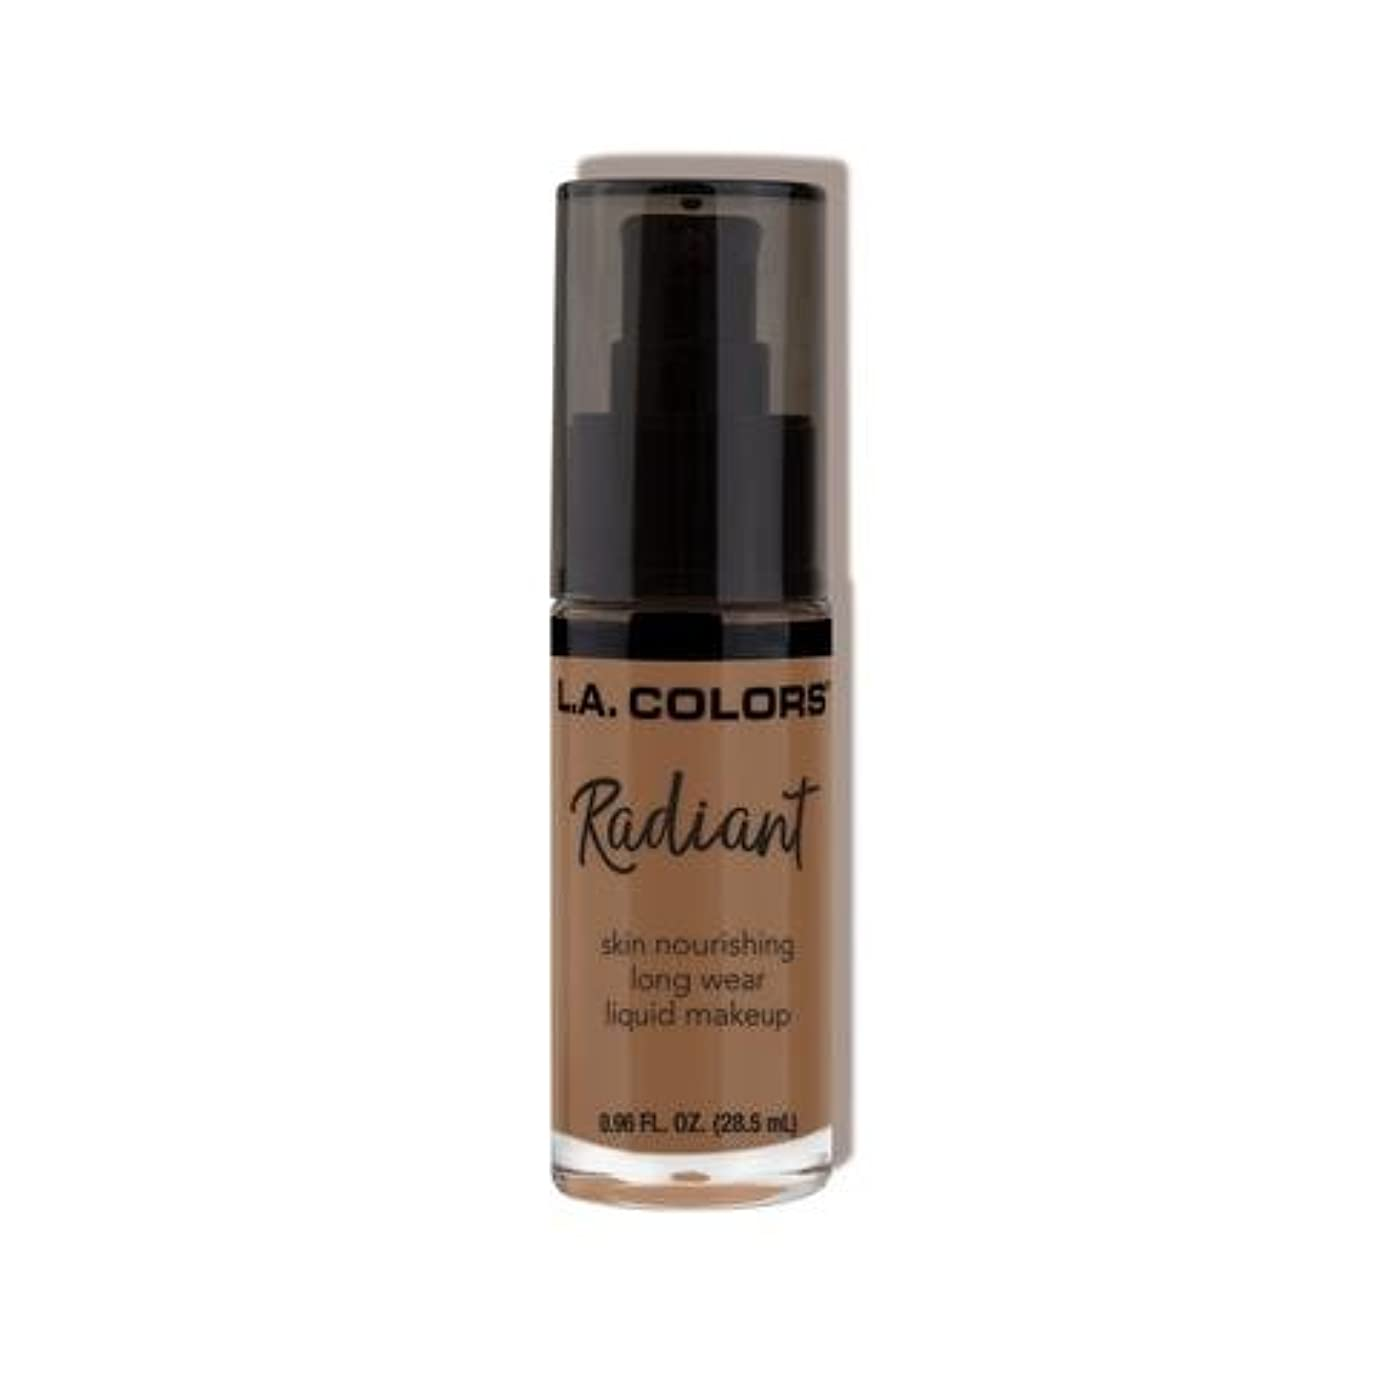 (6 Pack) L.A. COLORS Radiant Liquid Makeup - Mocha (並行輸入品)